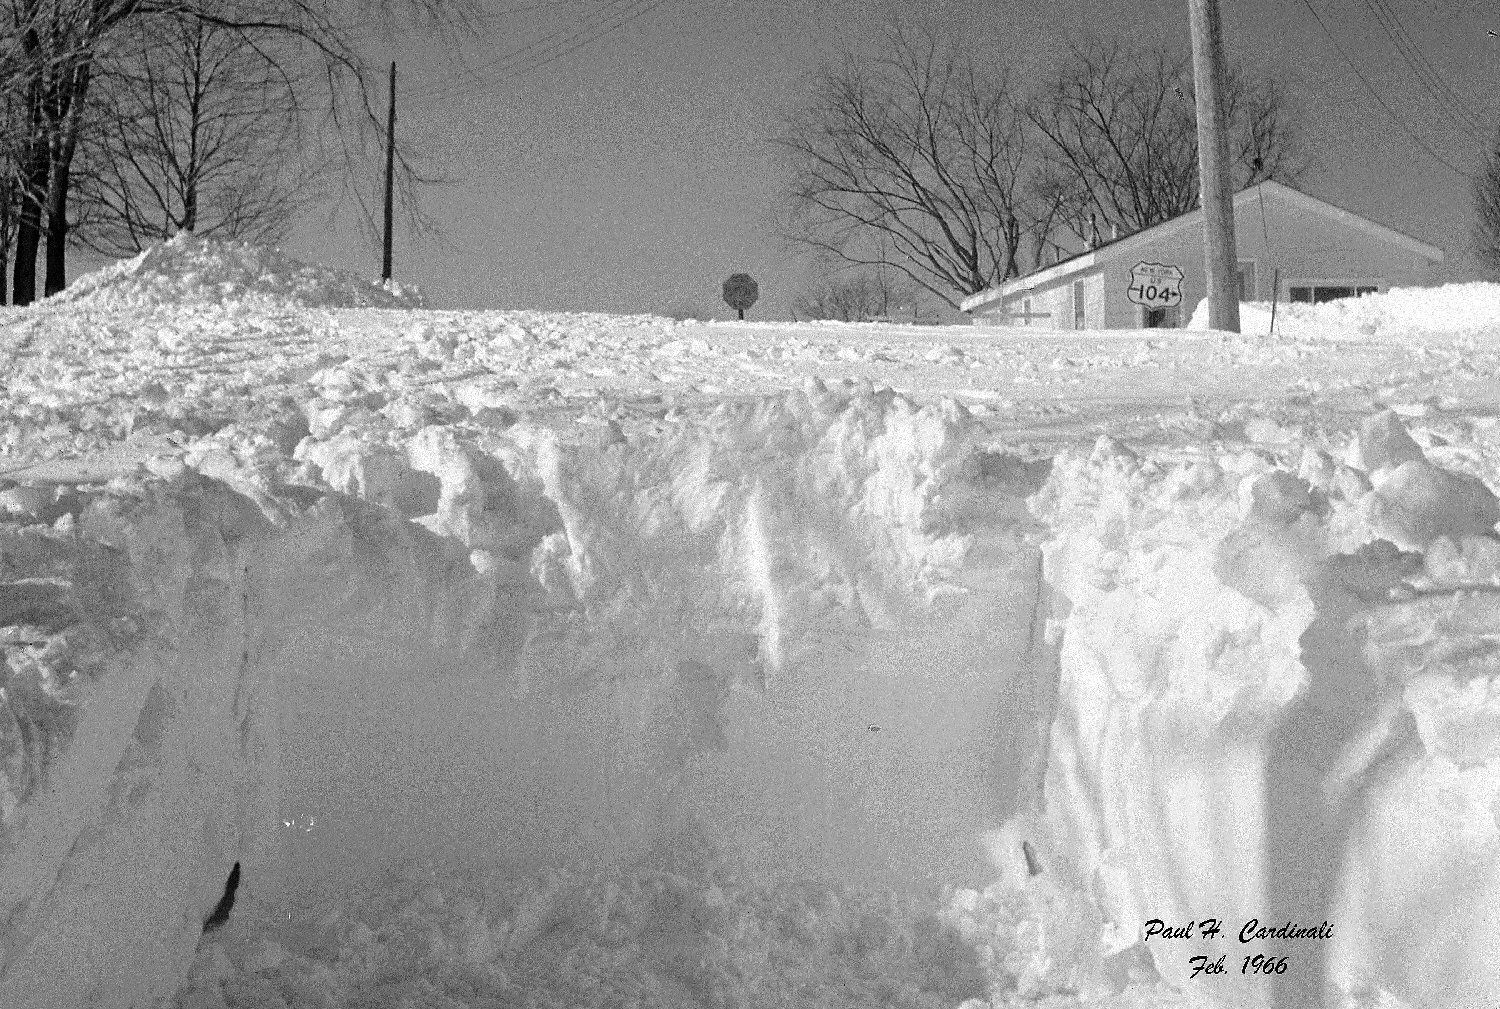 The snowbanks were several feet high.